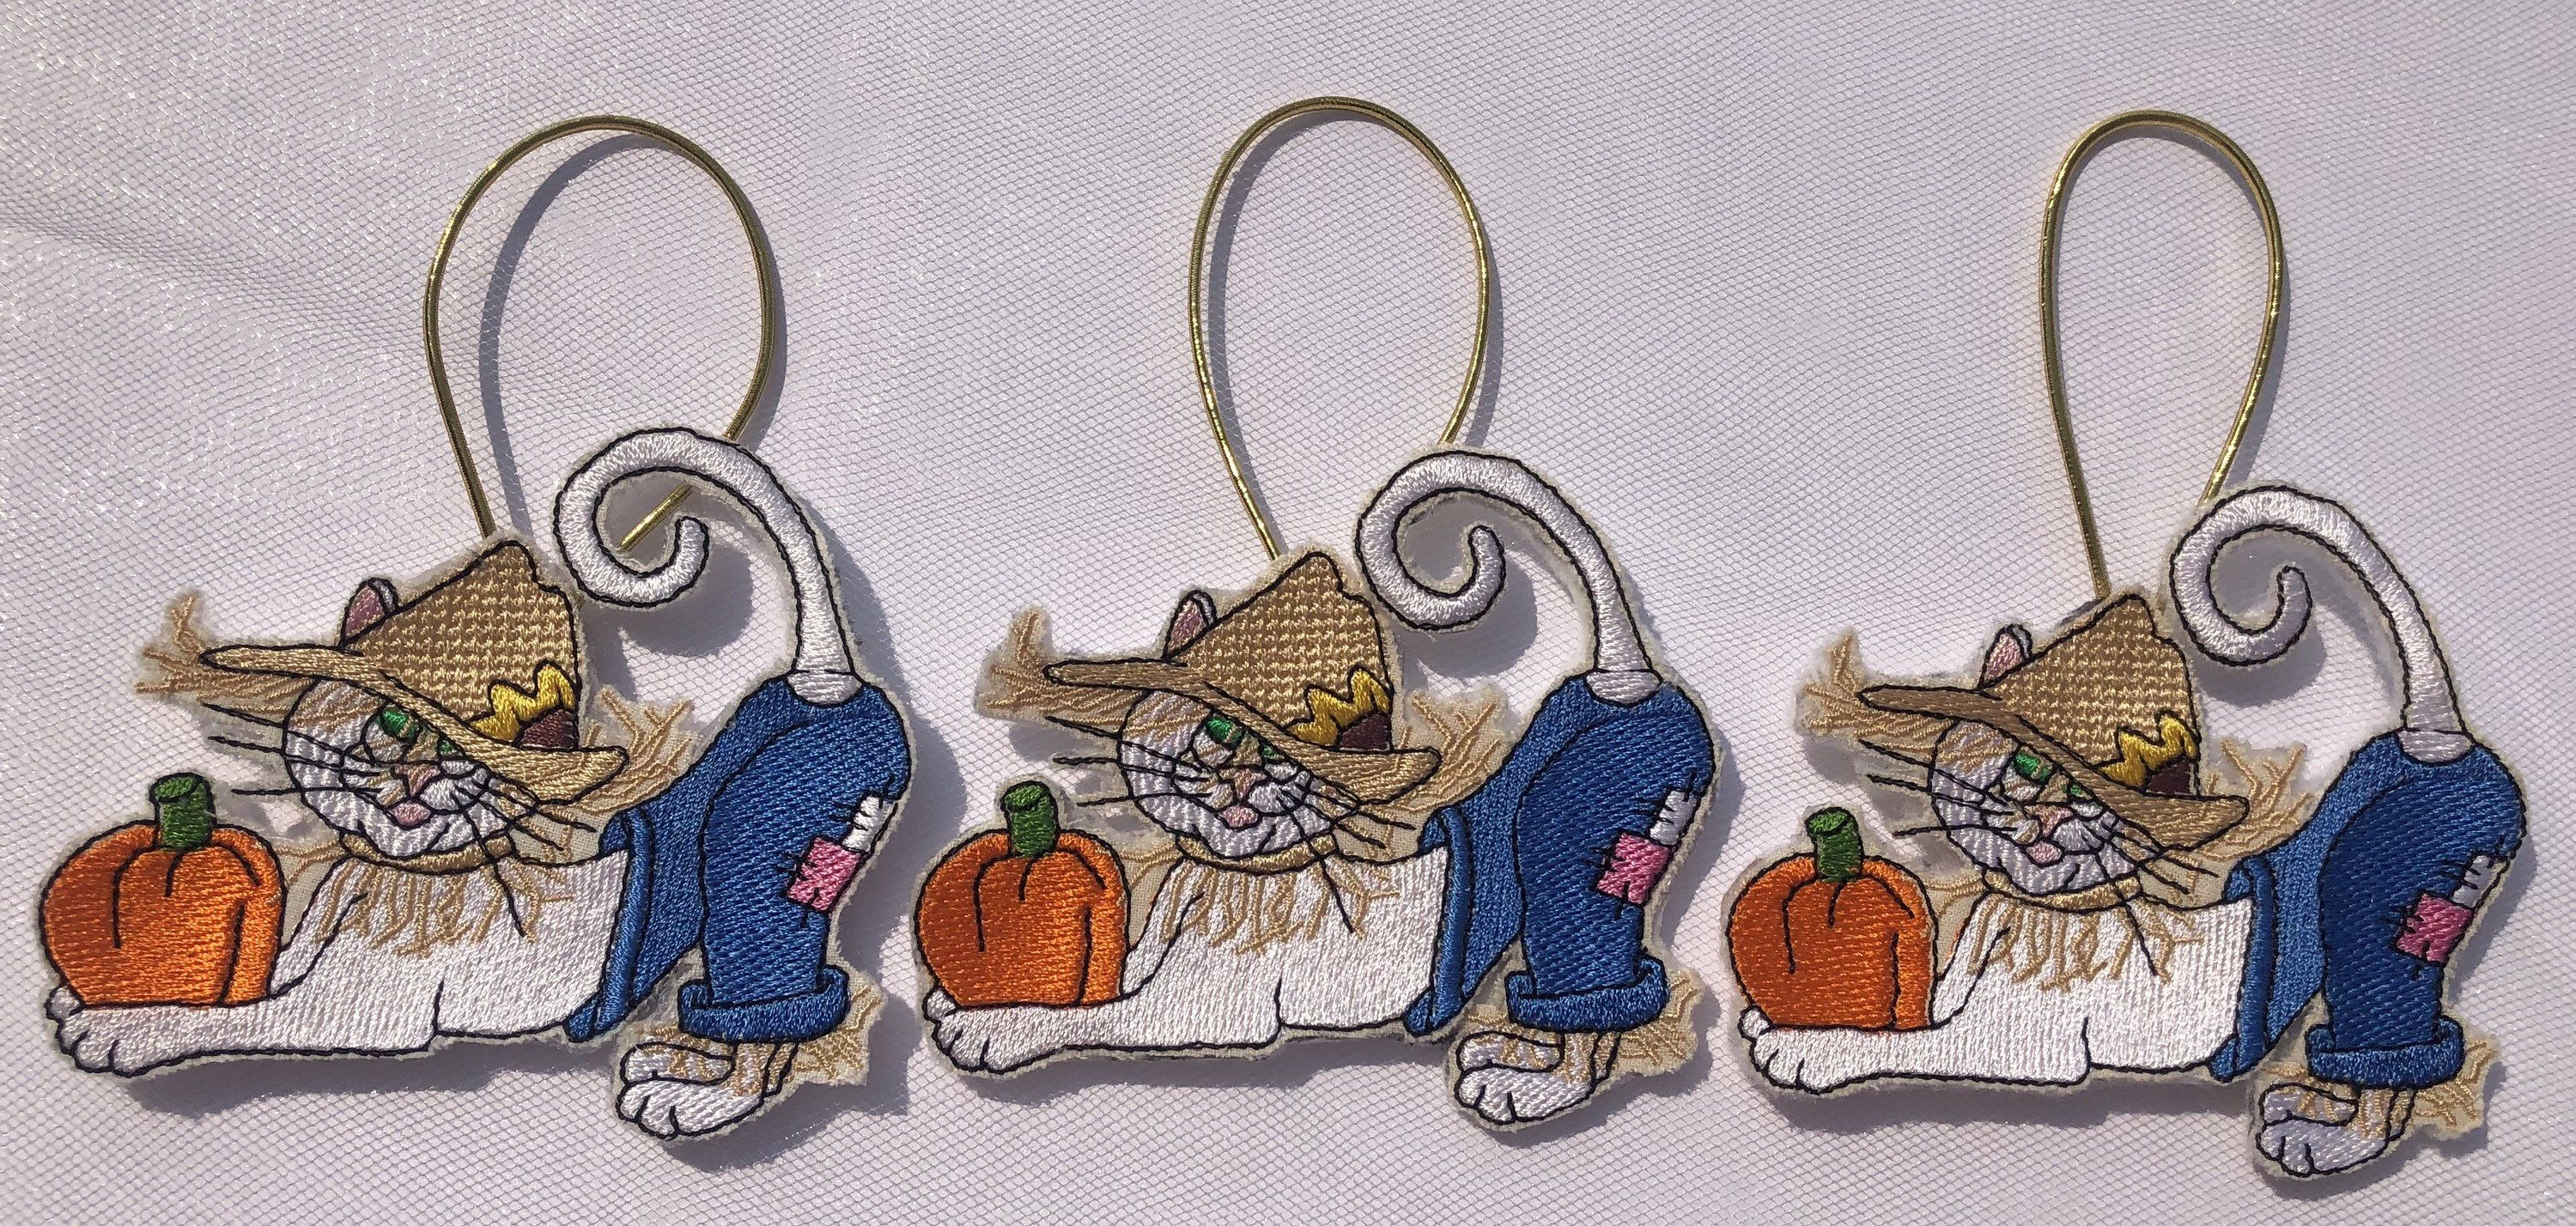 Excited to share this item from my #etsy shop: Embroidered Autumn Cat Ornament with Felt on the back.Decor for Fall,Thanksgiving Halloween,on Wreath,Trees, for Cat,Kitty, Lover's! #white #halloween #blue #homedecor #felt #embroideryaddict #embroidery #thanksgiving